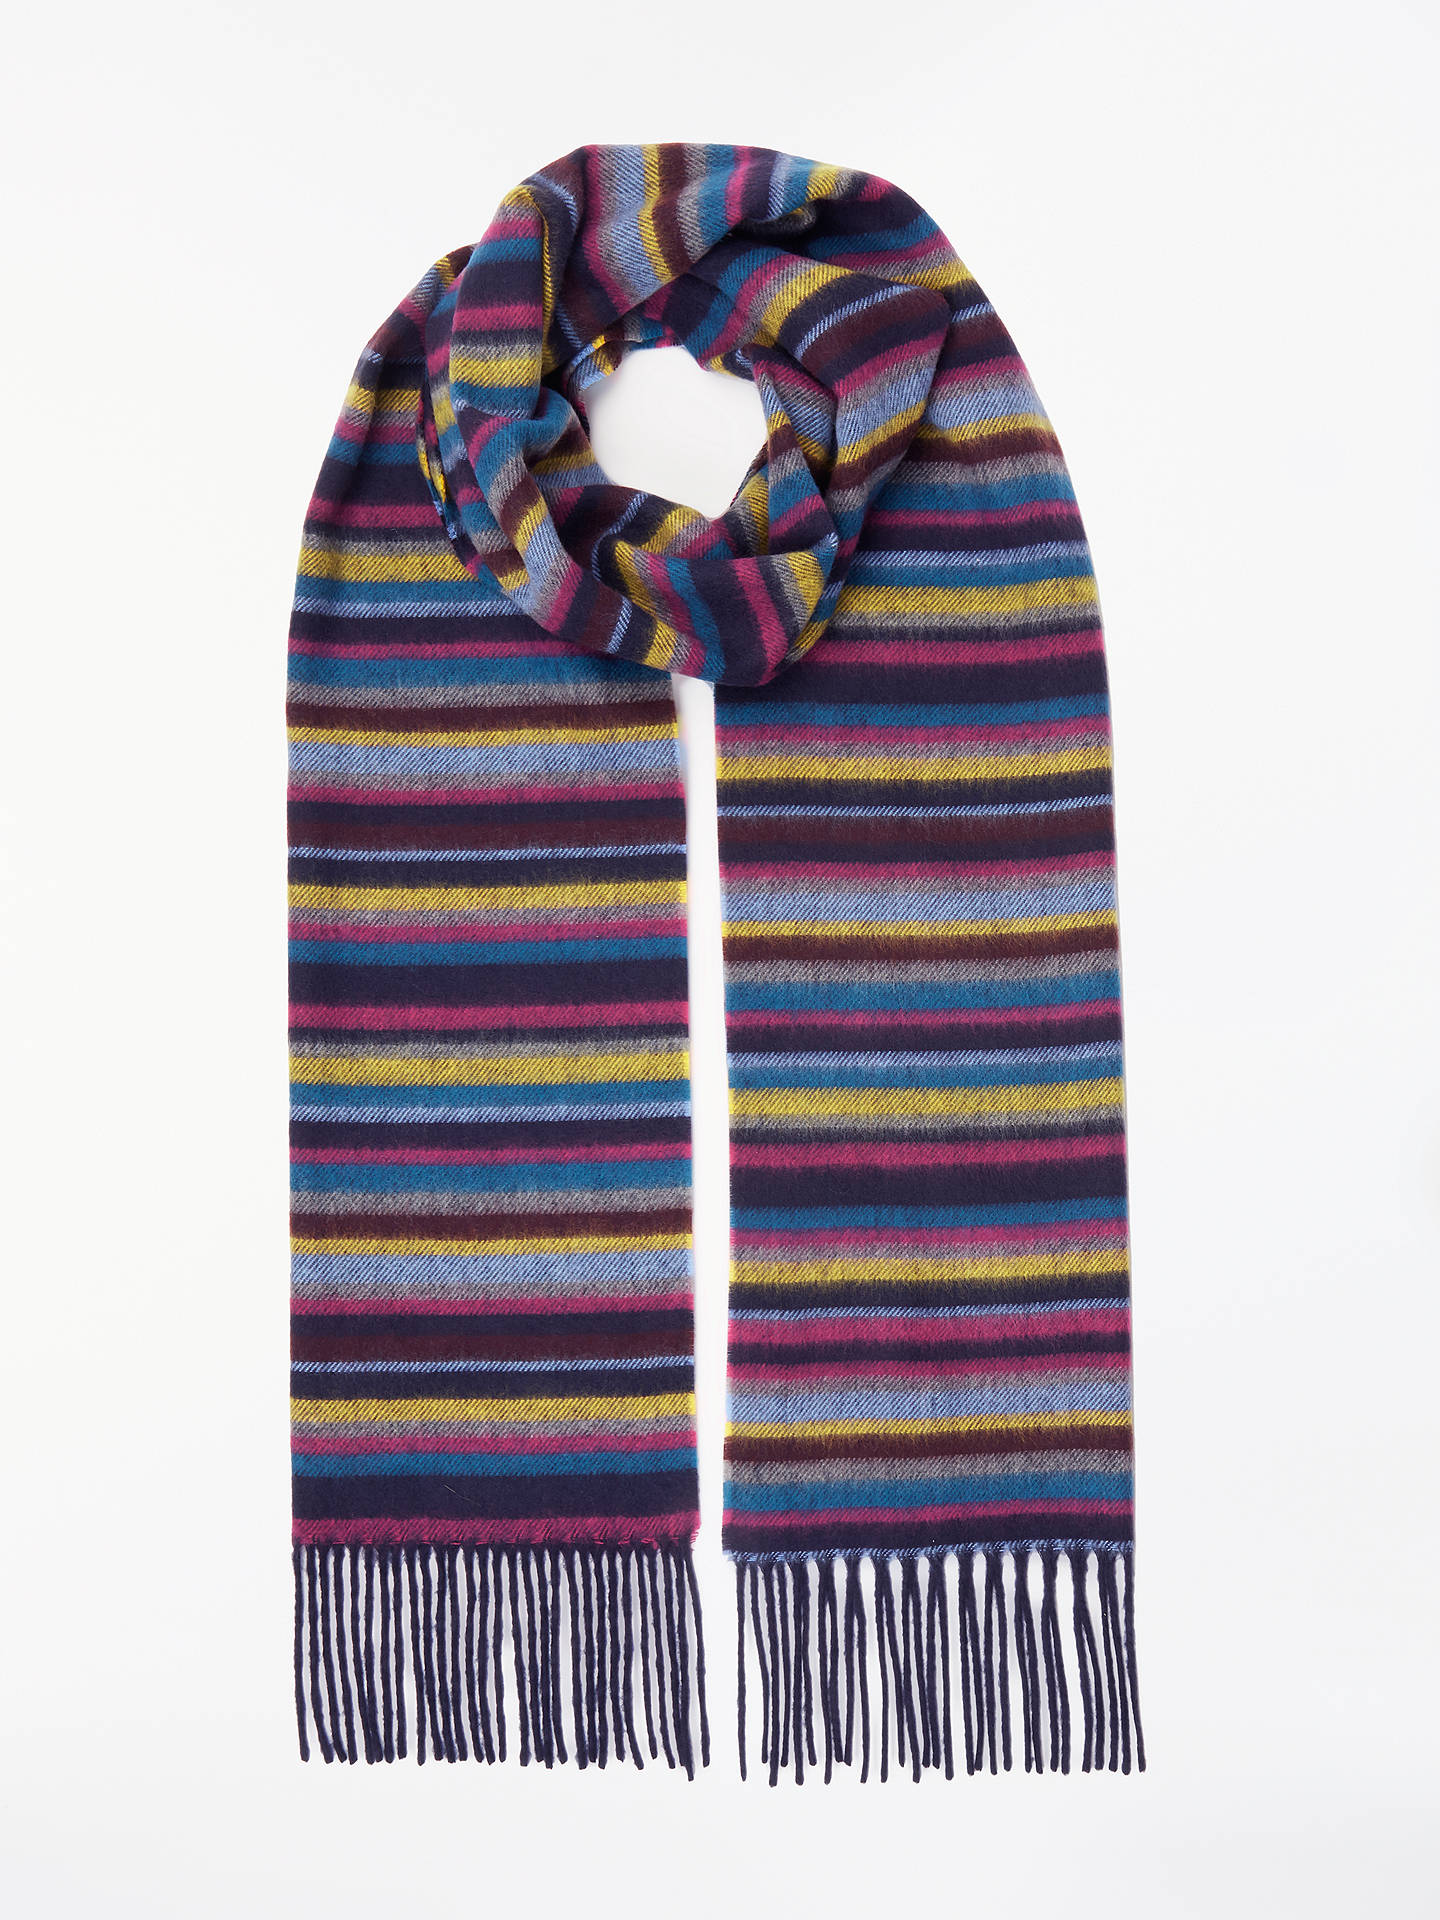 BuyJohn Lewis & Partners Cashmink Stripe Scarf, Multi Online at johnlewis.com